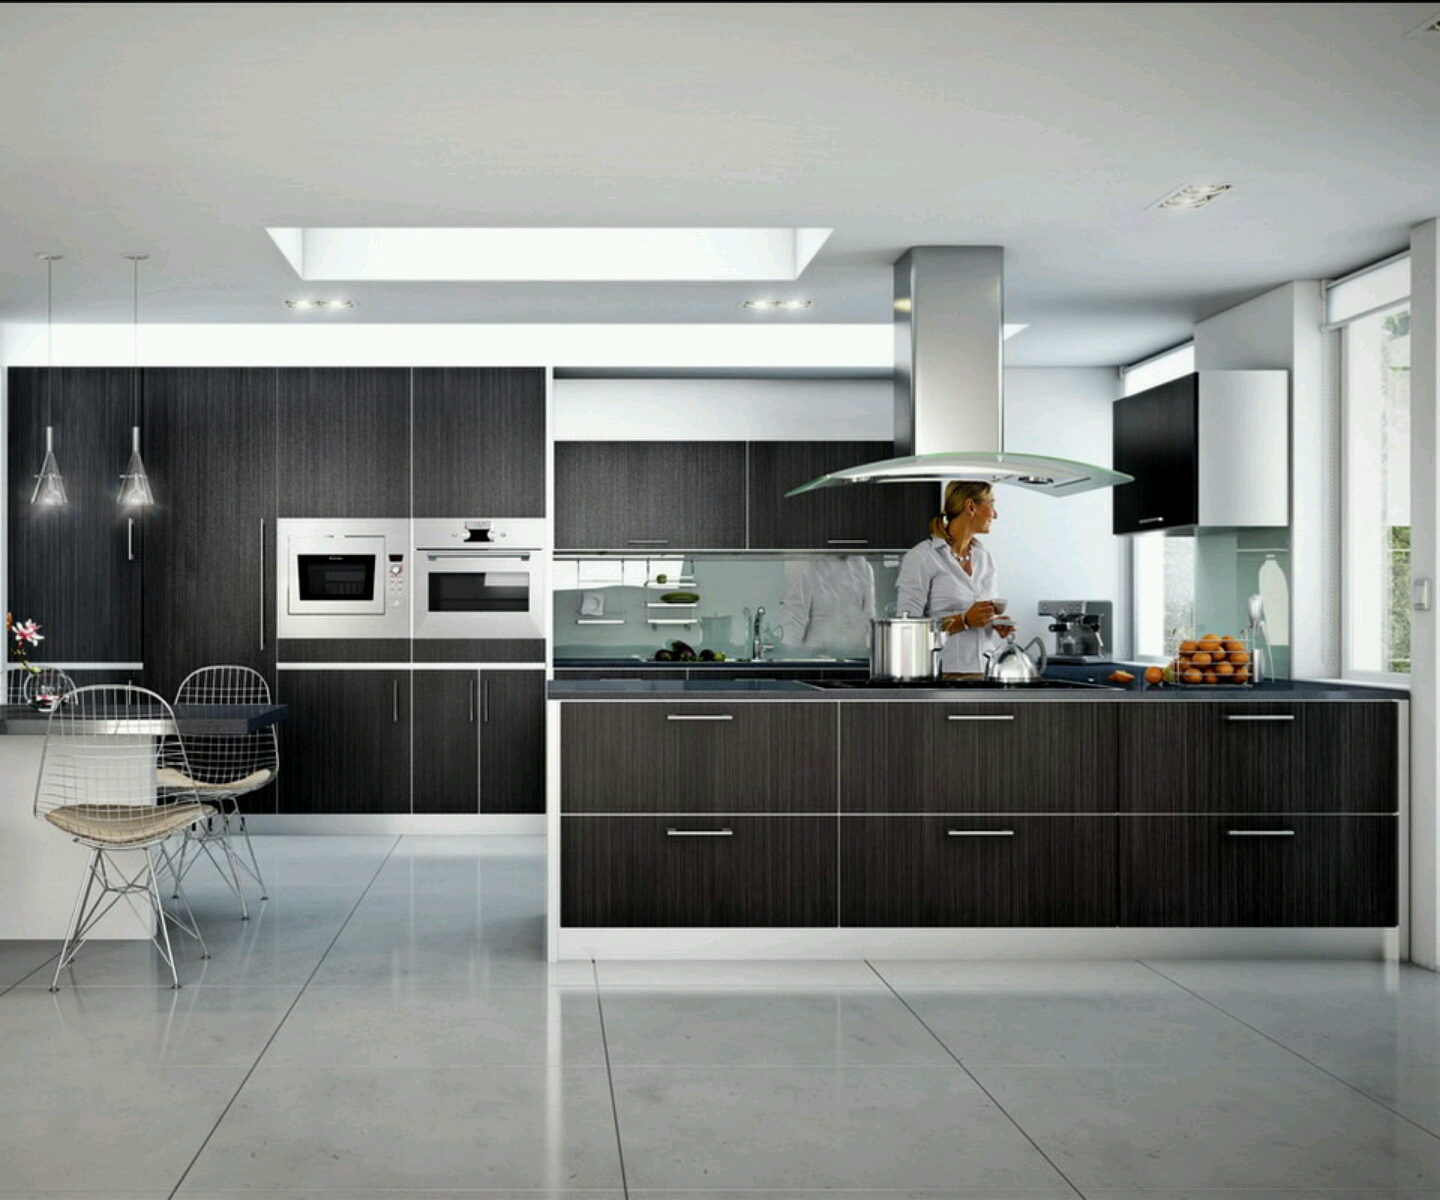 Modern homes ultra modern kitchen designs ideas new for Modern kitchen design ideas